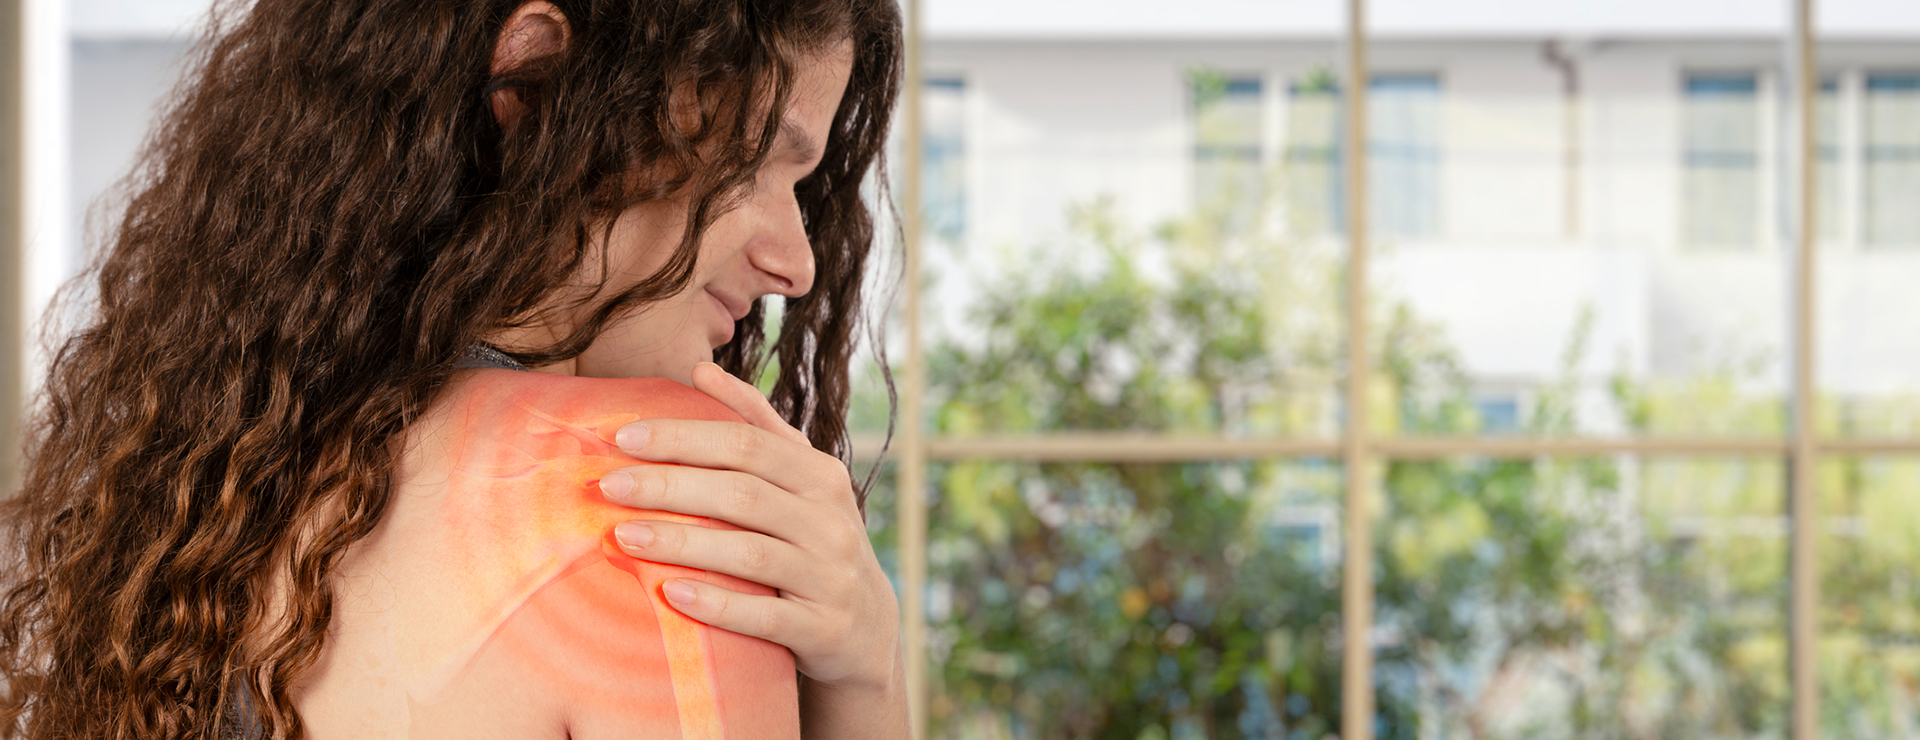 Women experiencing shoulder pain